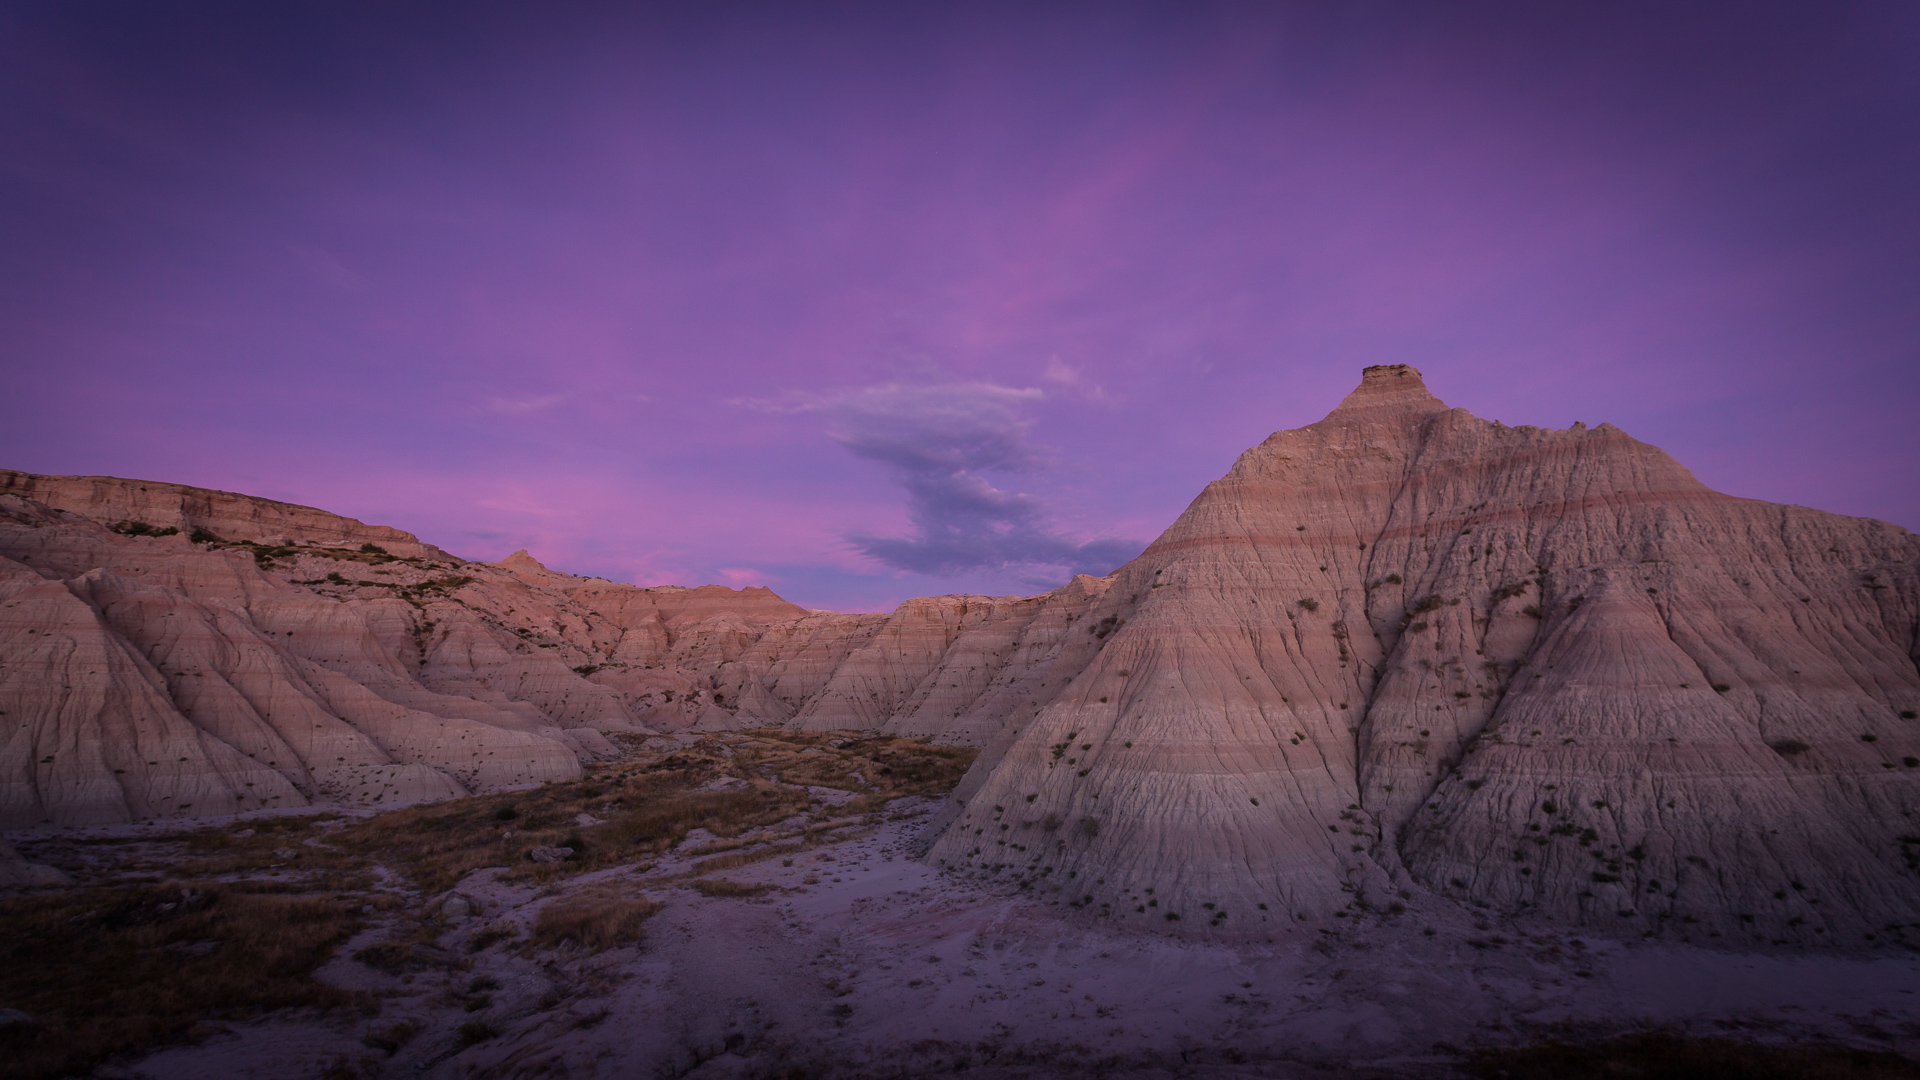 Badlands in Late Twilight - Digital (Night) - Joe Schufman